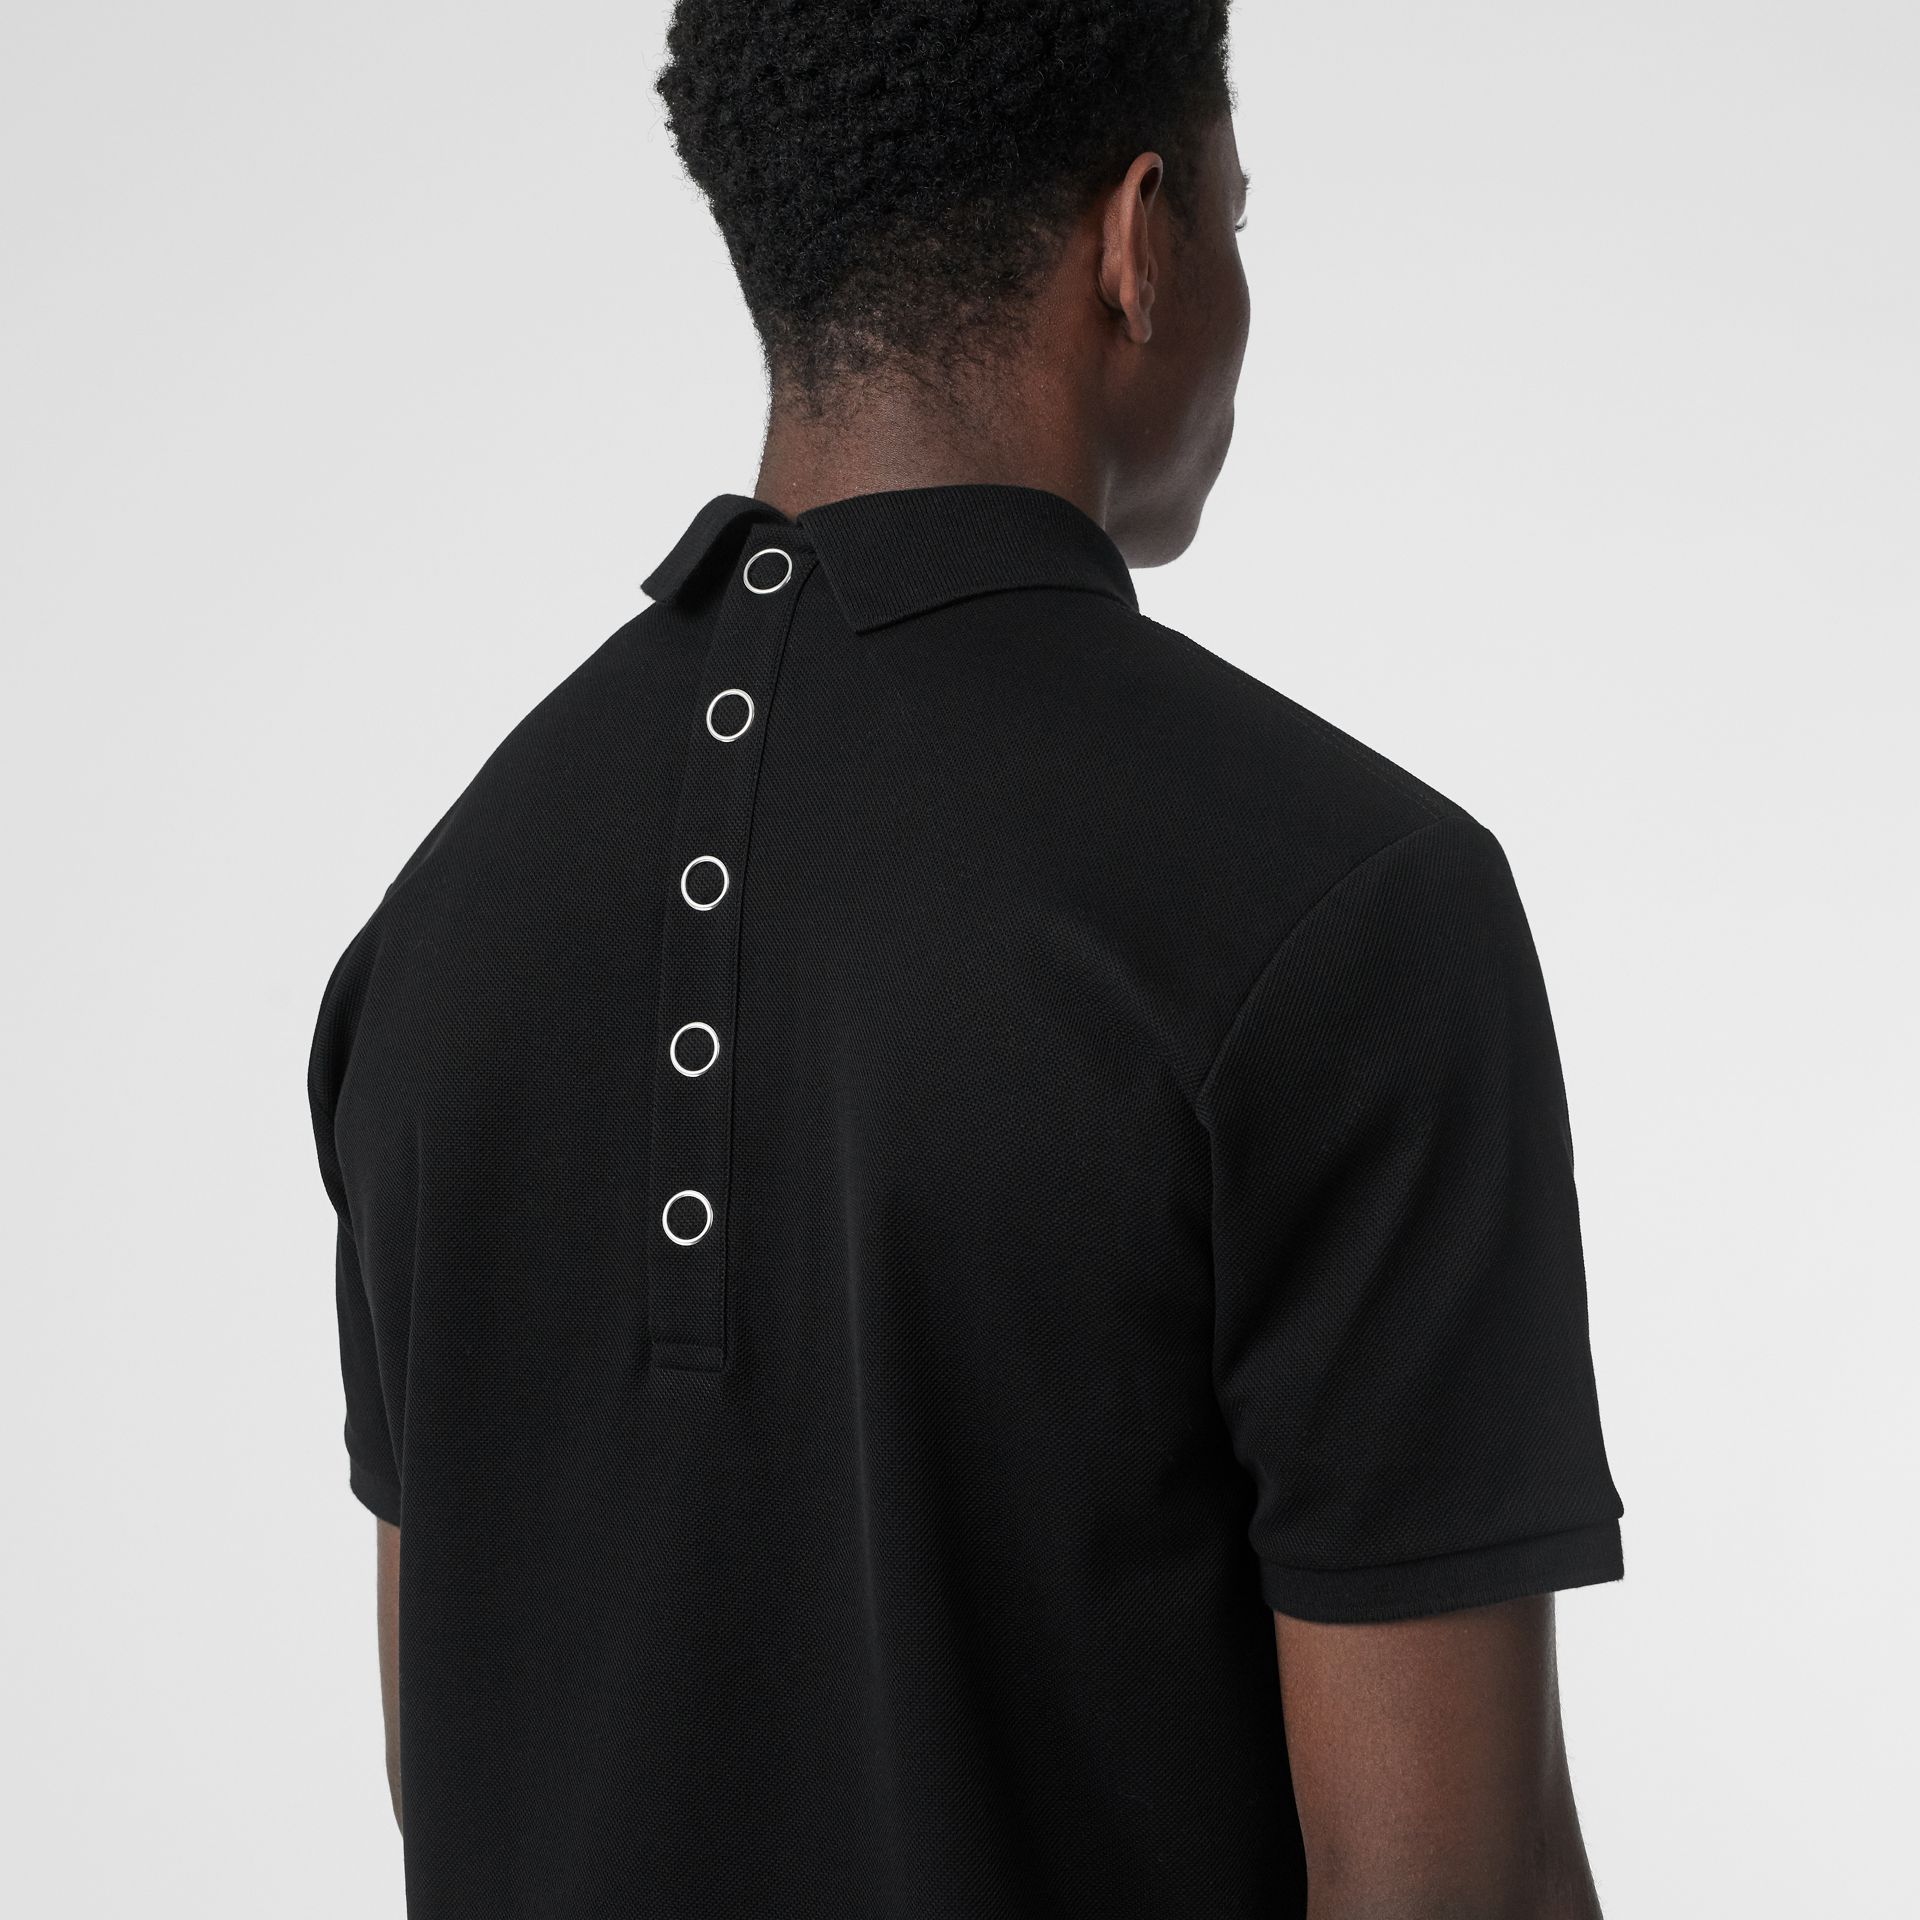 Monogram Motif Cotton Piqué Polo Shirt in Black | Burberry - gallery image 4